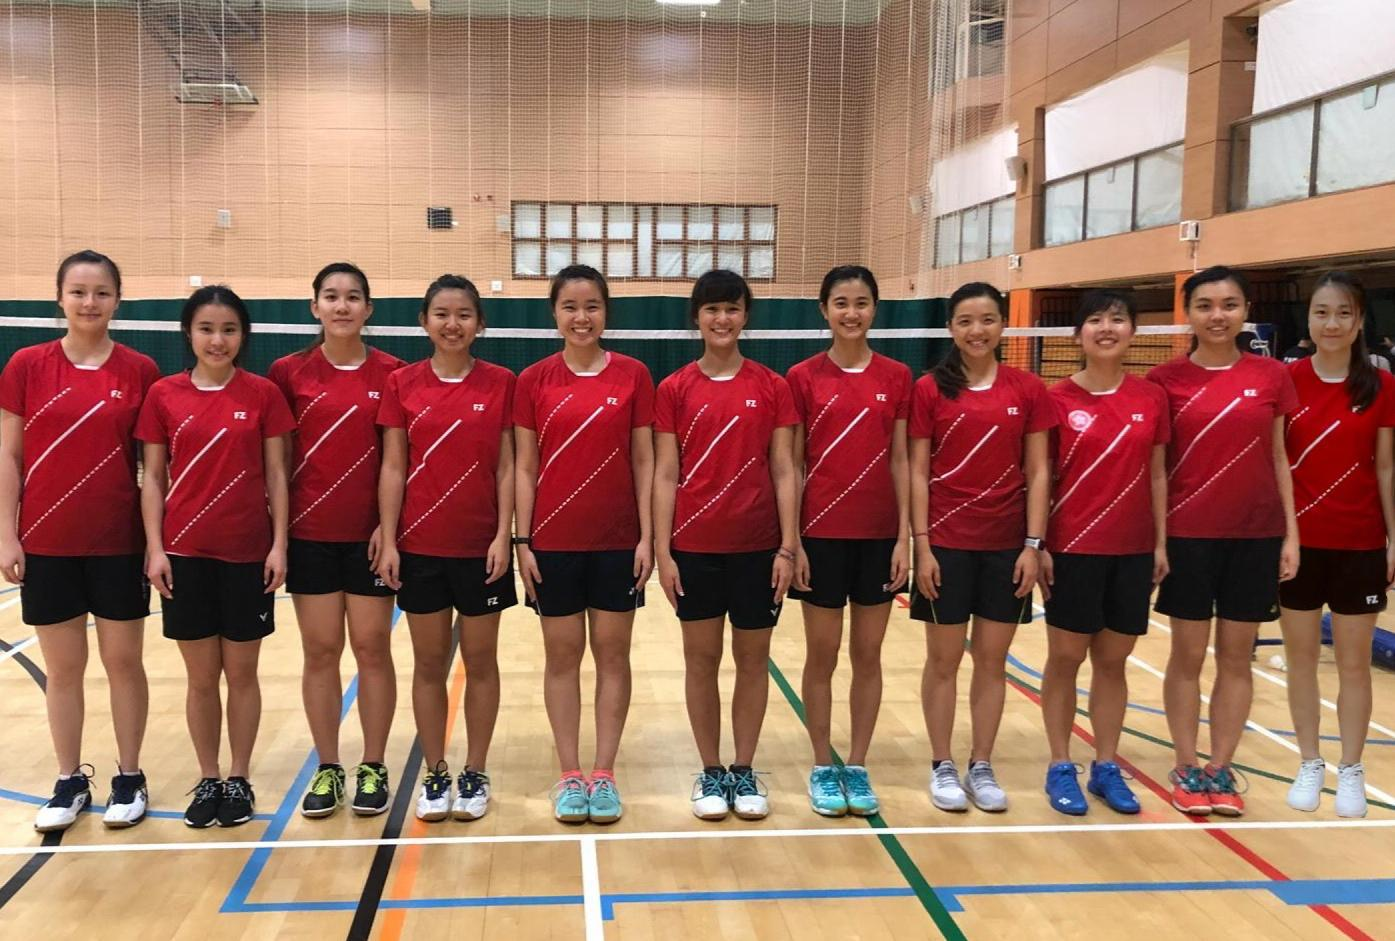 Badminton girls 2018 2019